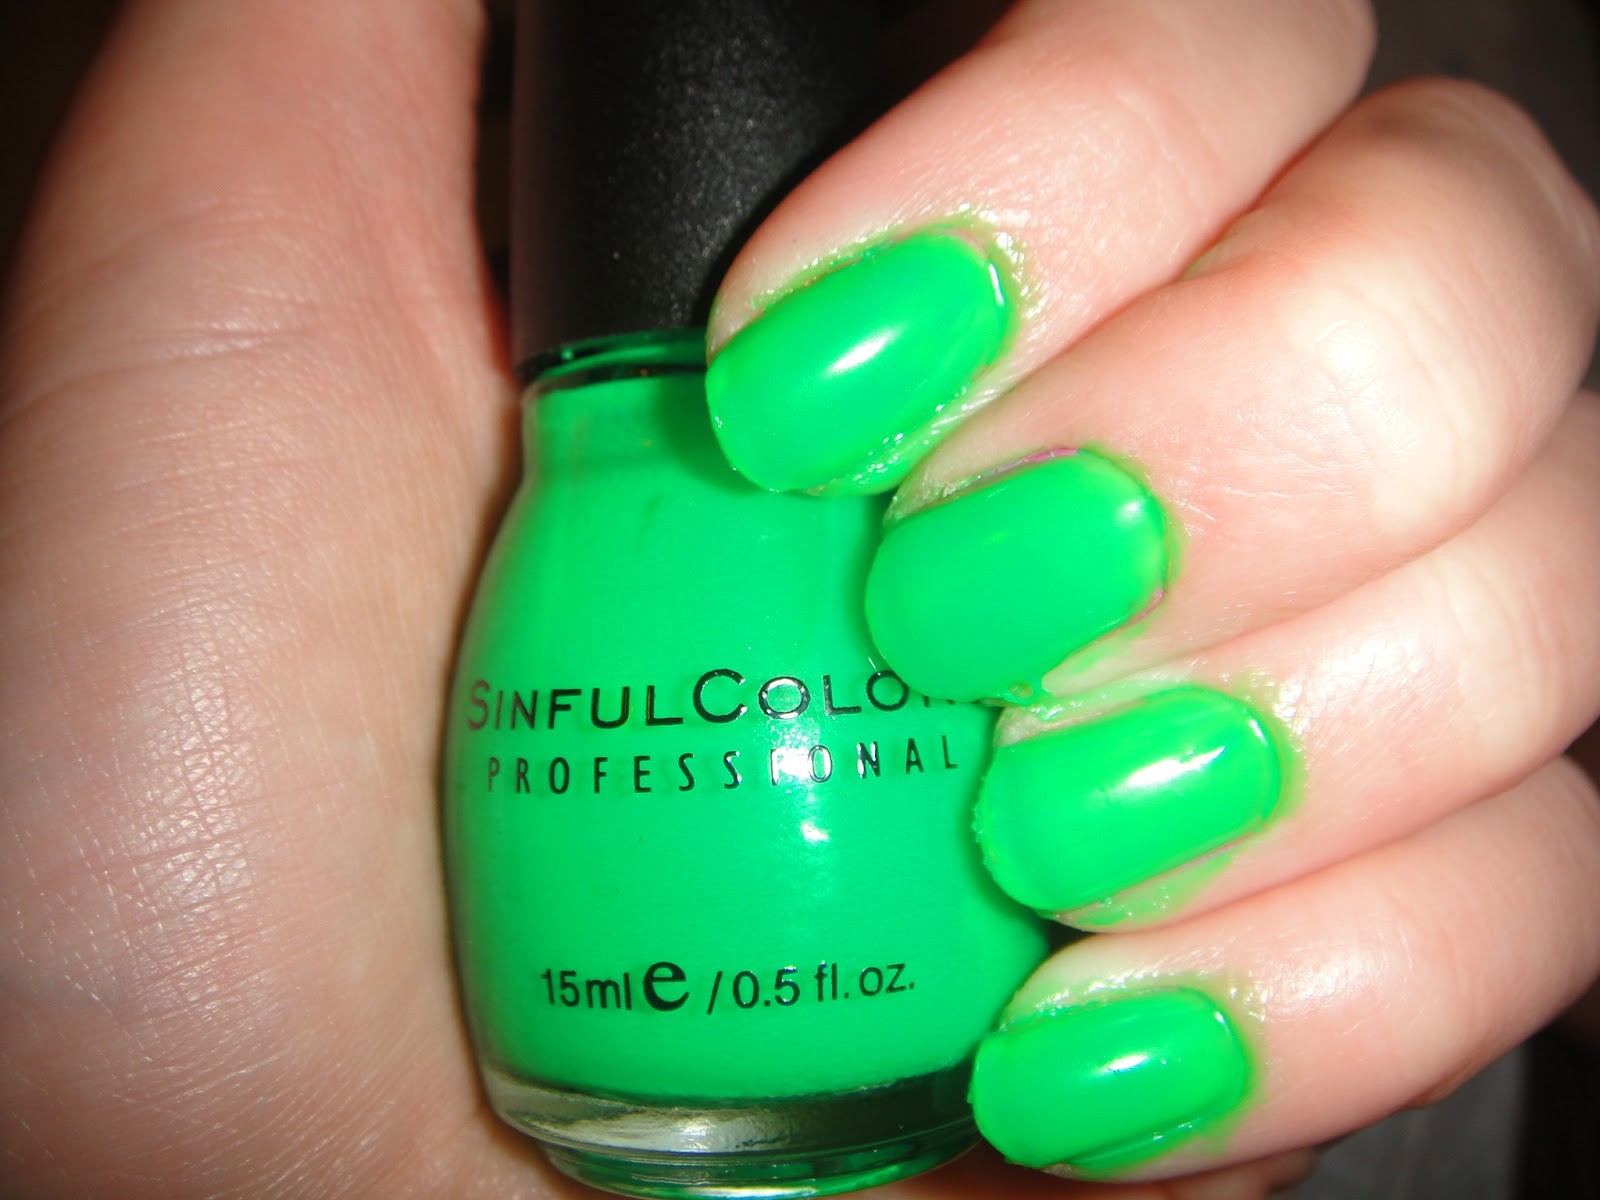 Sinful colors, sinful color Irish Green review, neon green polish, polish review, Sinful colors Irish Green Swatch, irish green swatch